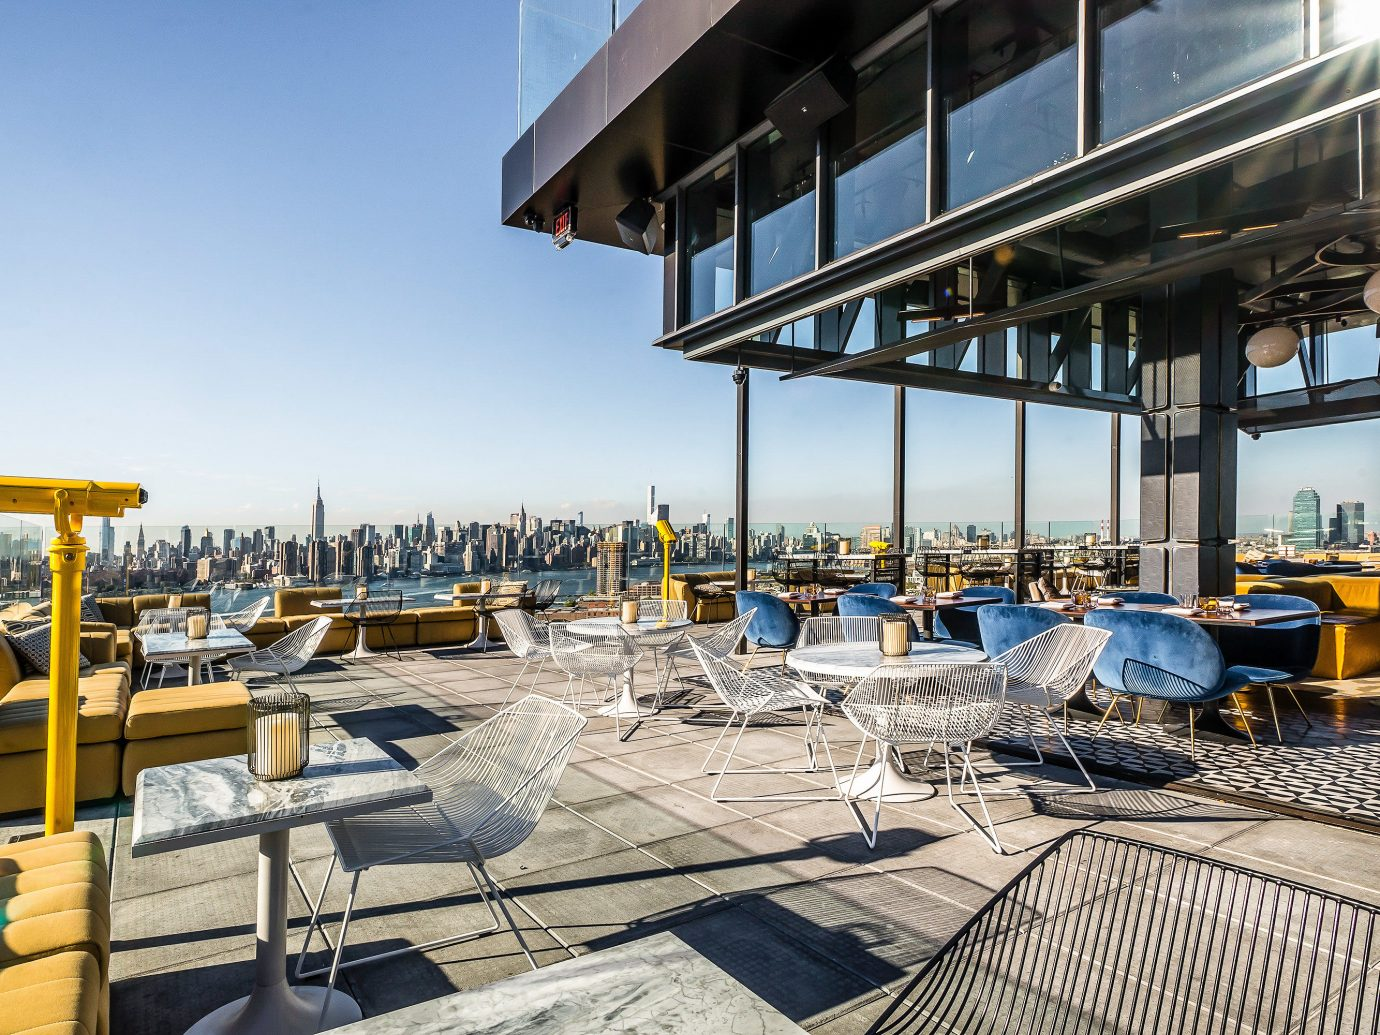 Boutique Hotels Food + Drink Hotels sky outdoor chair real estate apartment water condominium roof outdoor structure penthouse apartment building dock